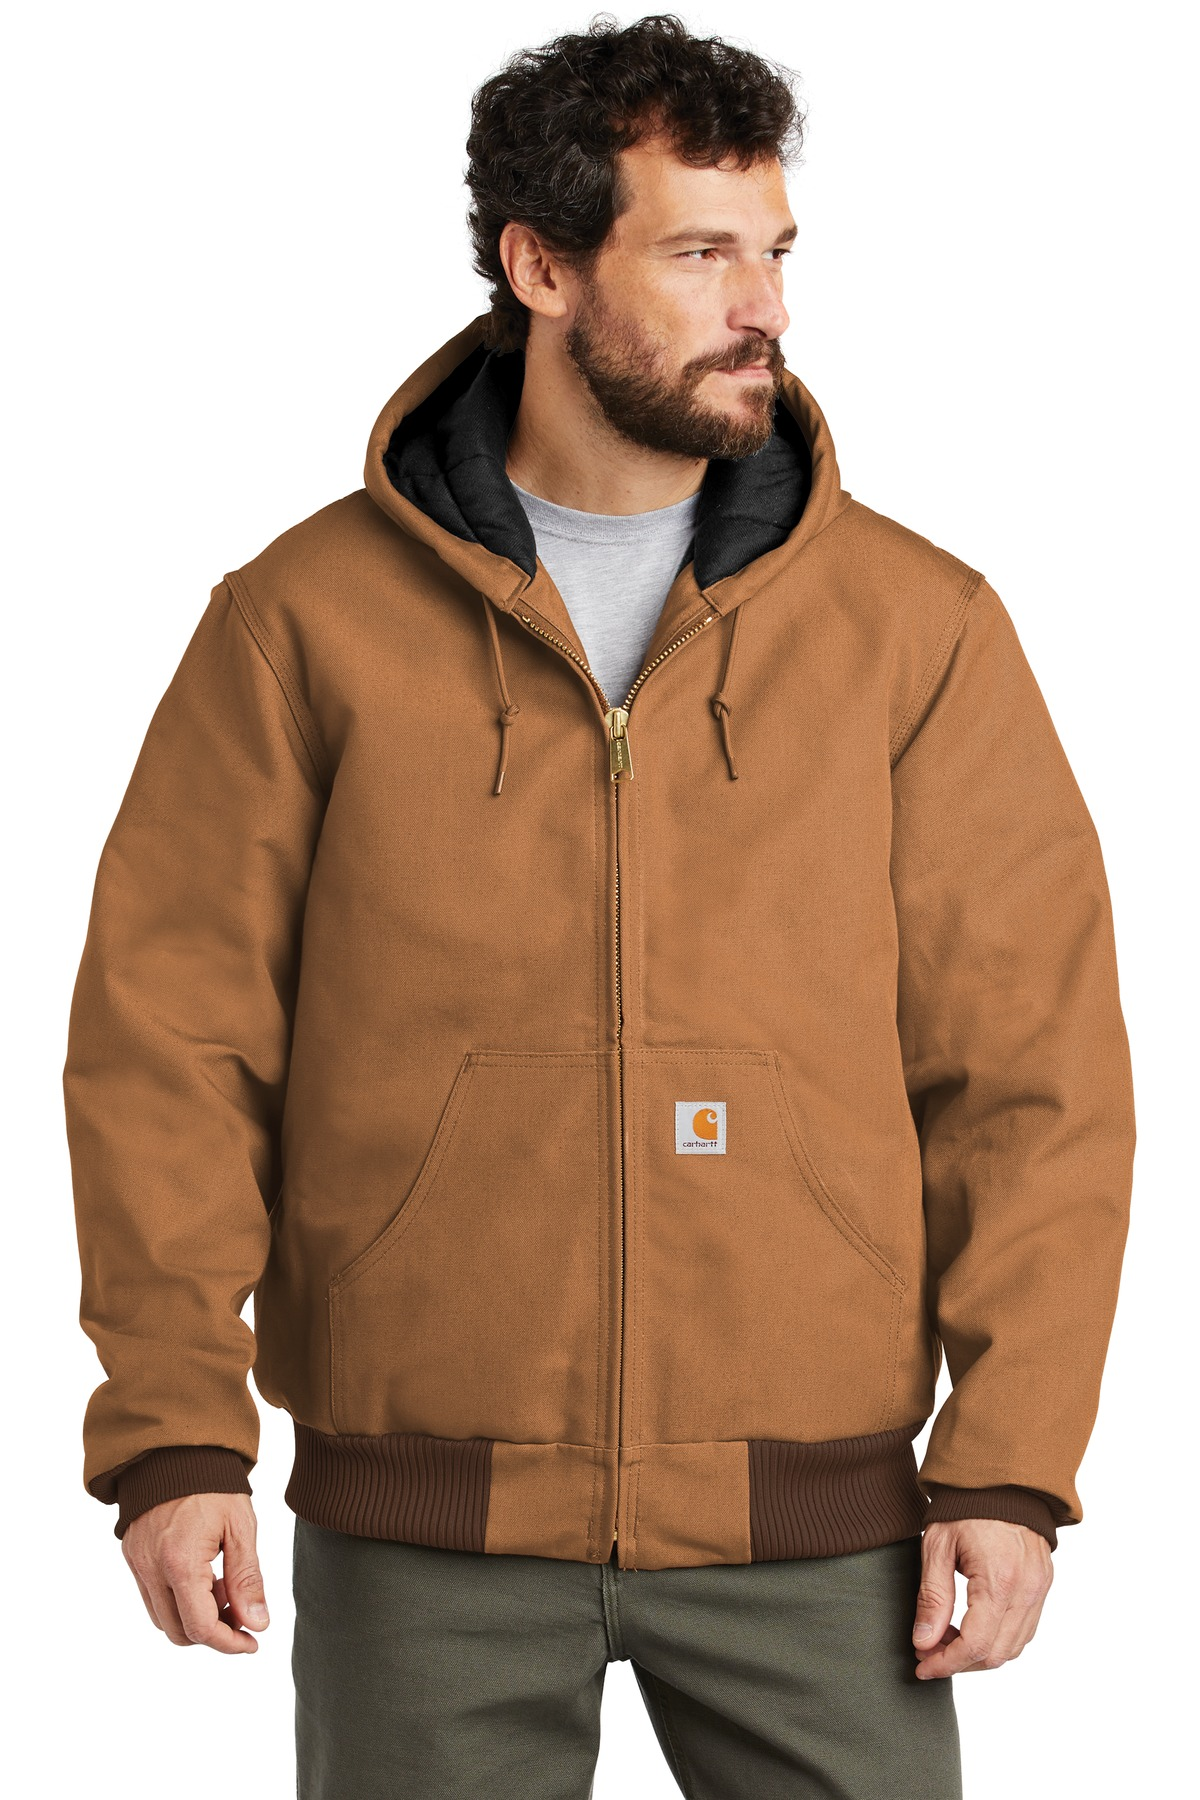 Carhartt  ®  Quilted-Flannel-Lined Duck Active Jac. CTSJ140 - Carhartt Brown